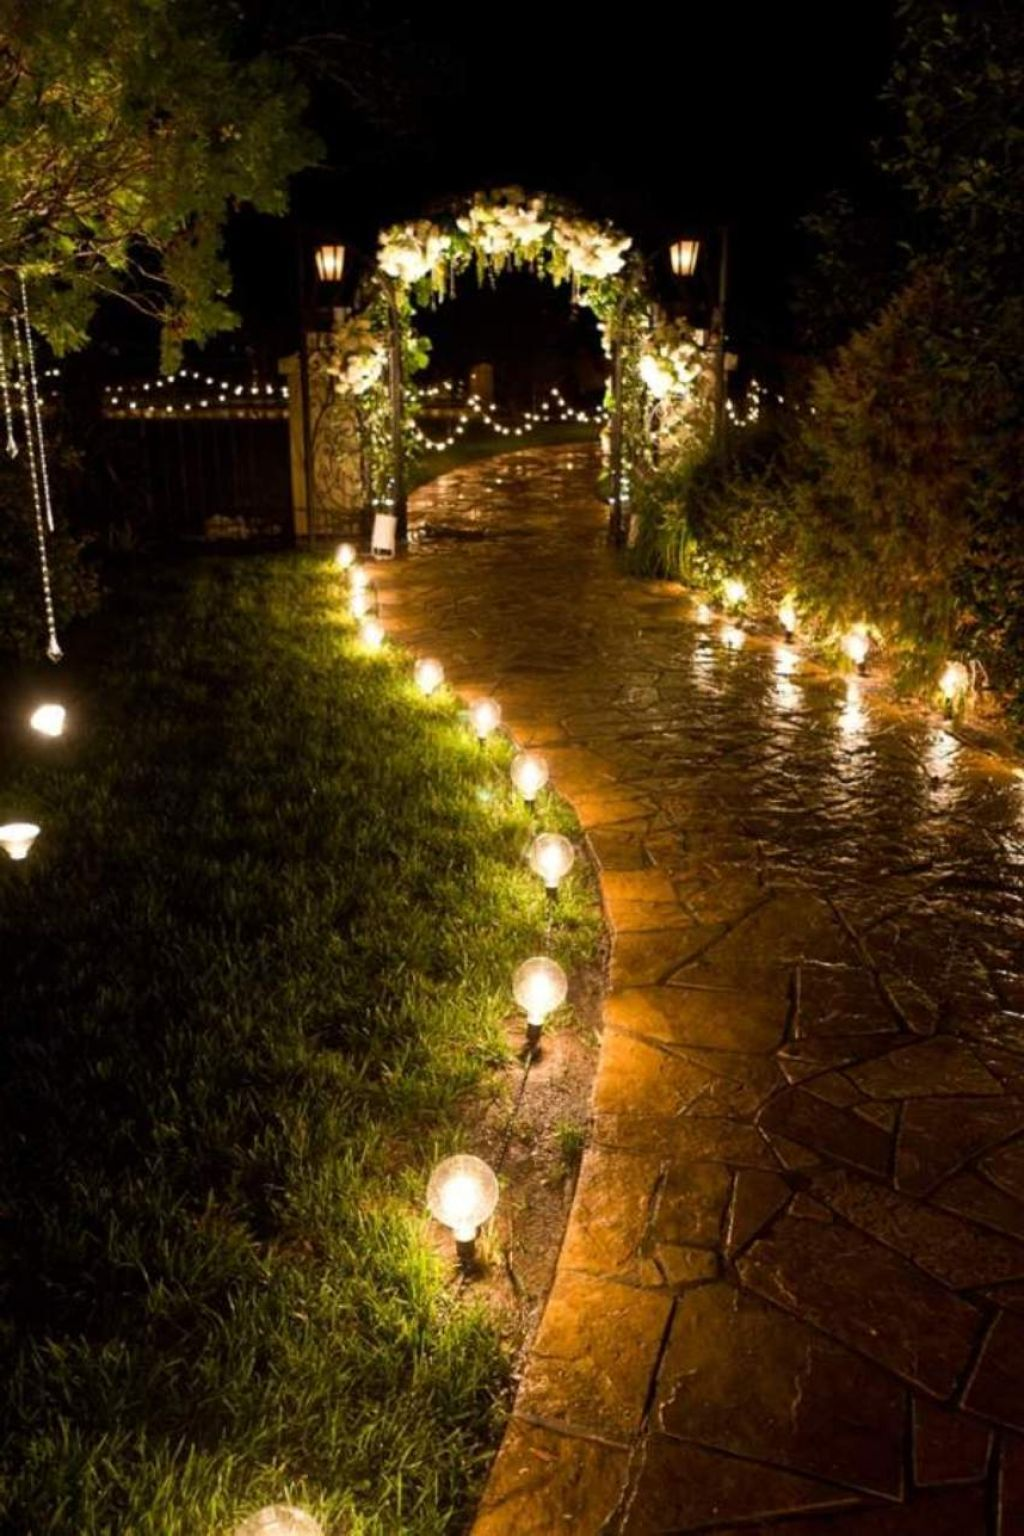 outdoor night lights on romantic garden lights google search garden design pictures outdoor wedding lighting garden path lighting outdoor wedding lighting